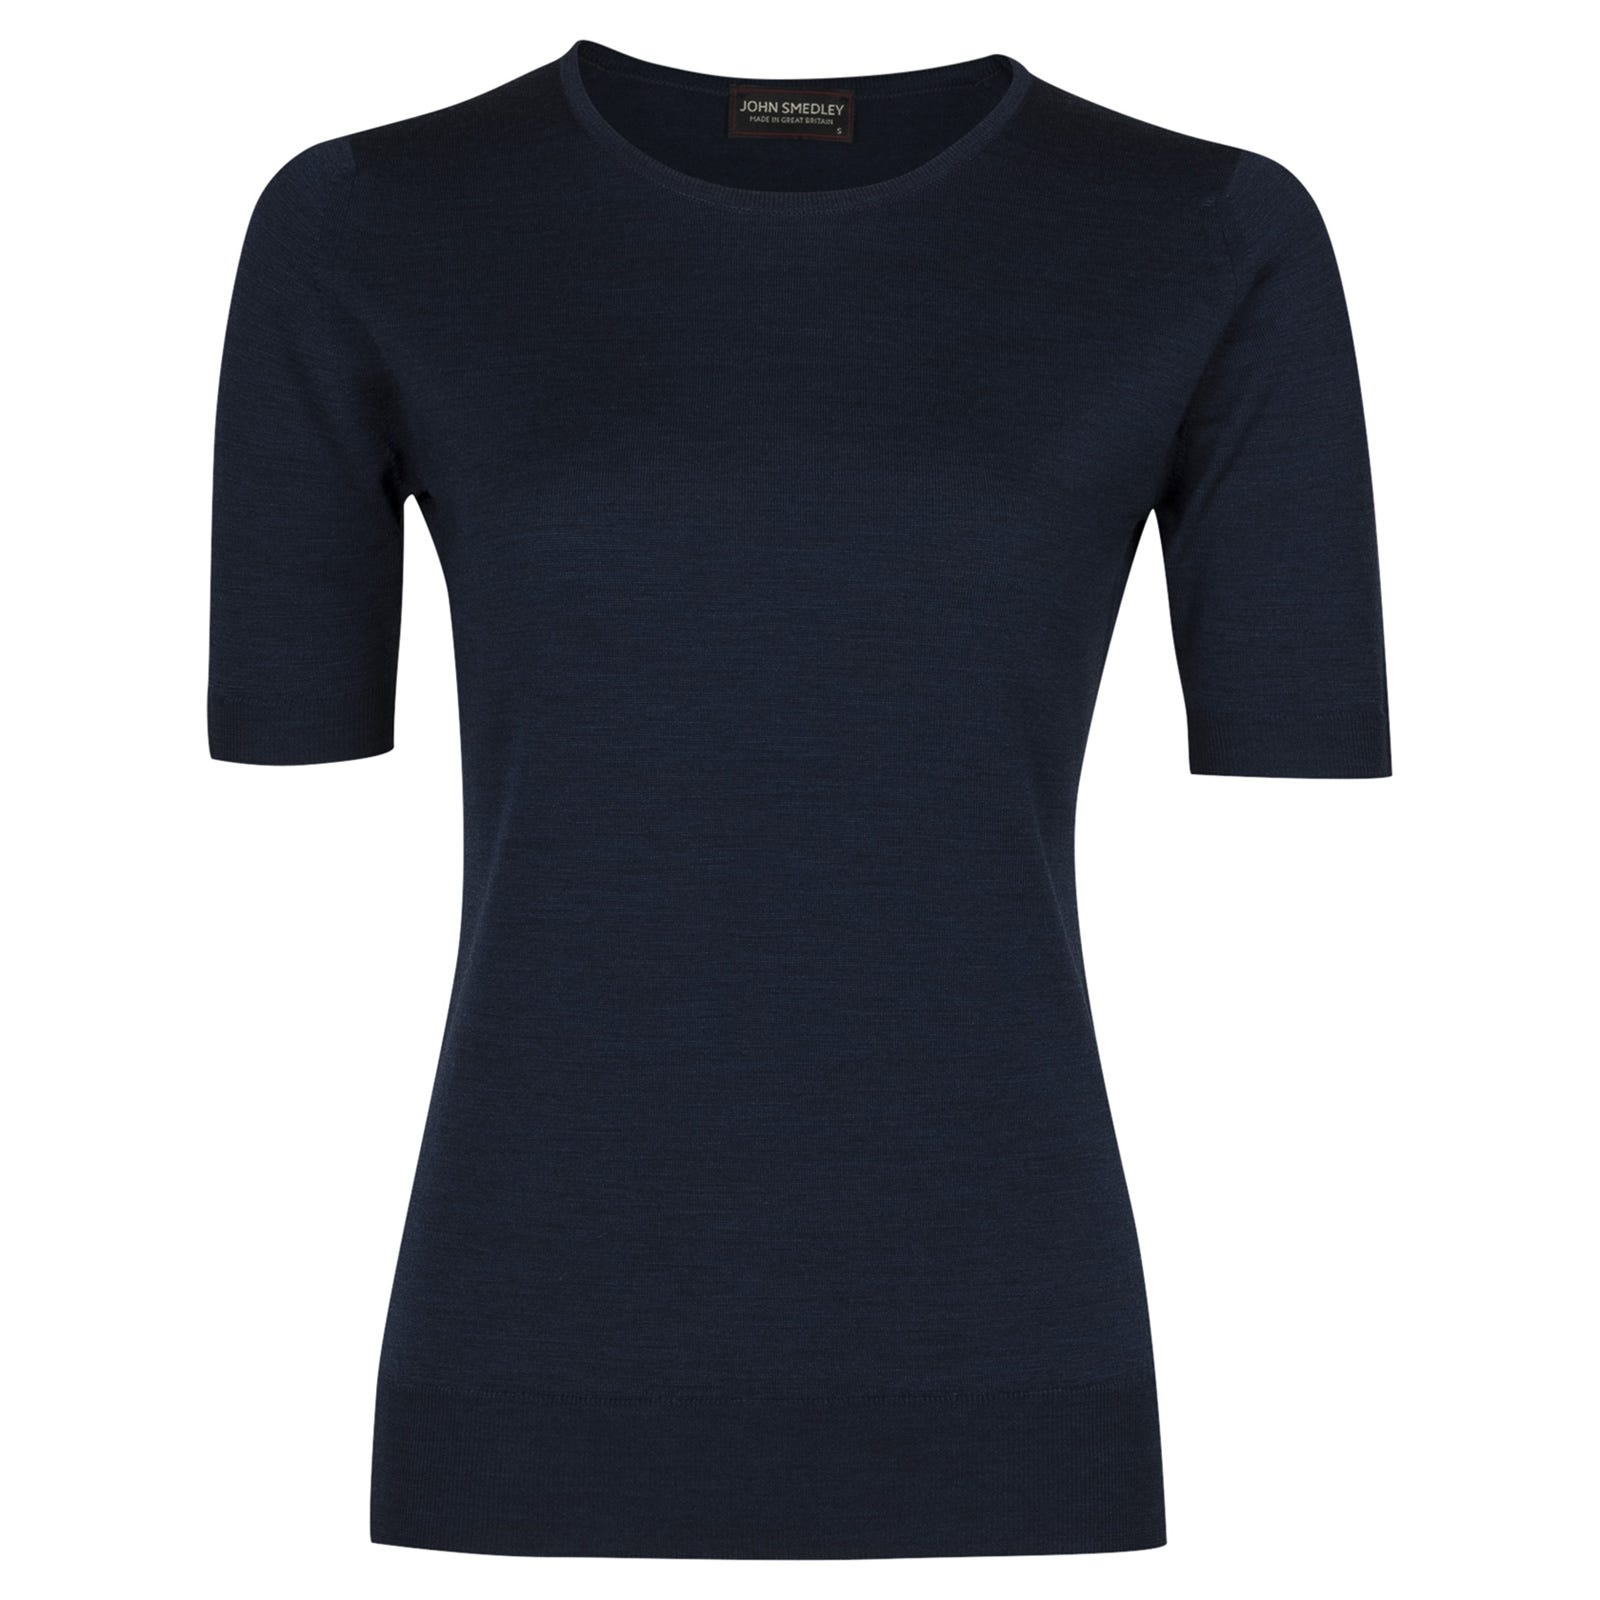 John Smedley rietta Merino Wool Sweater in Indigo-XL